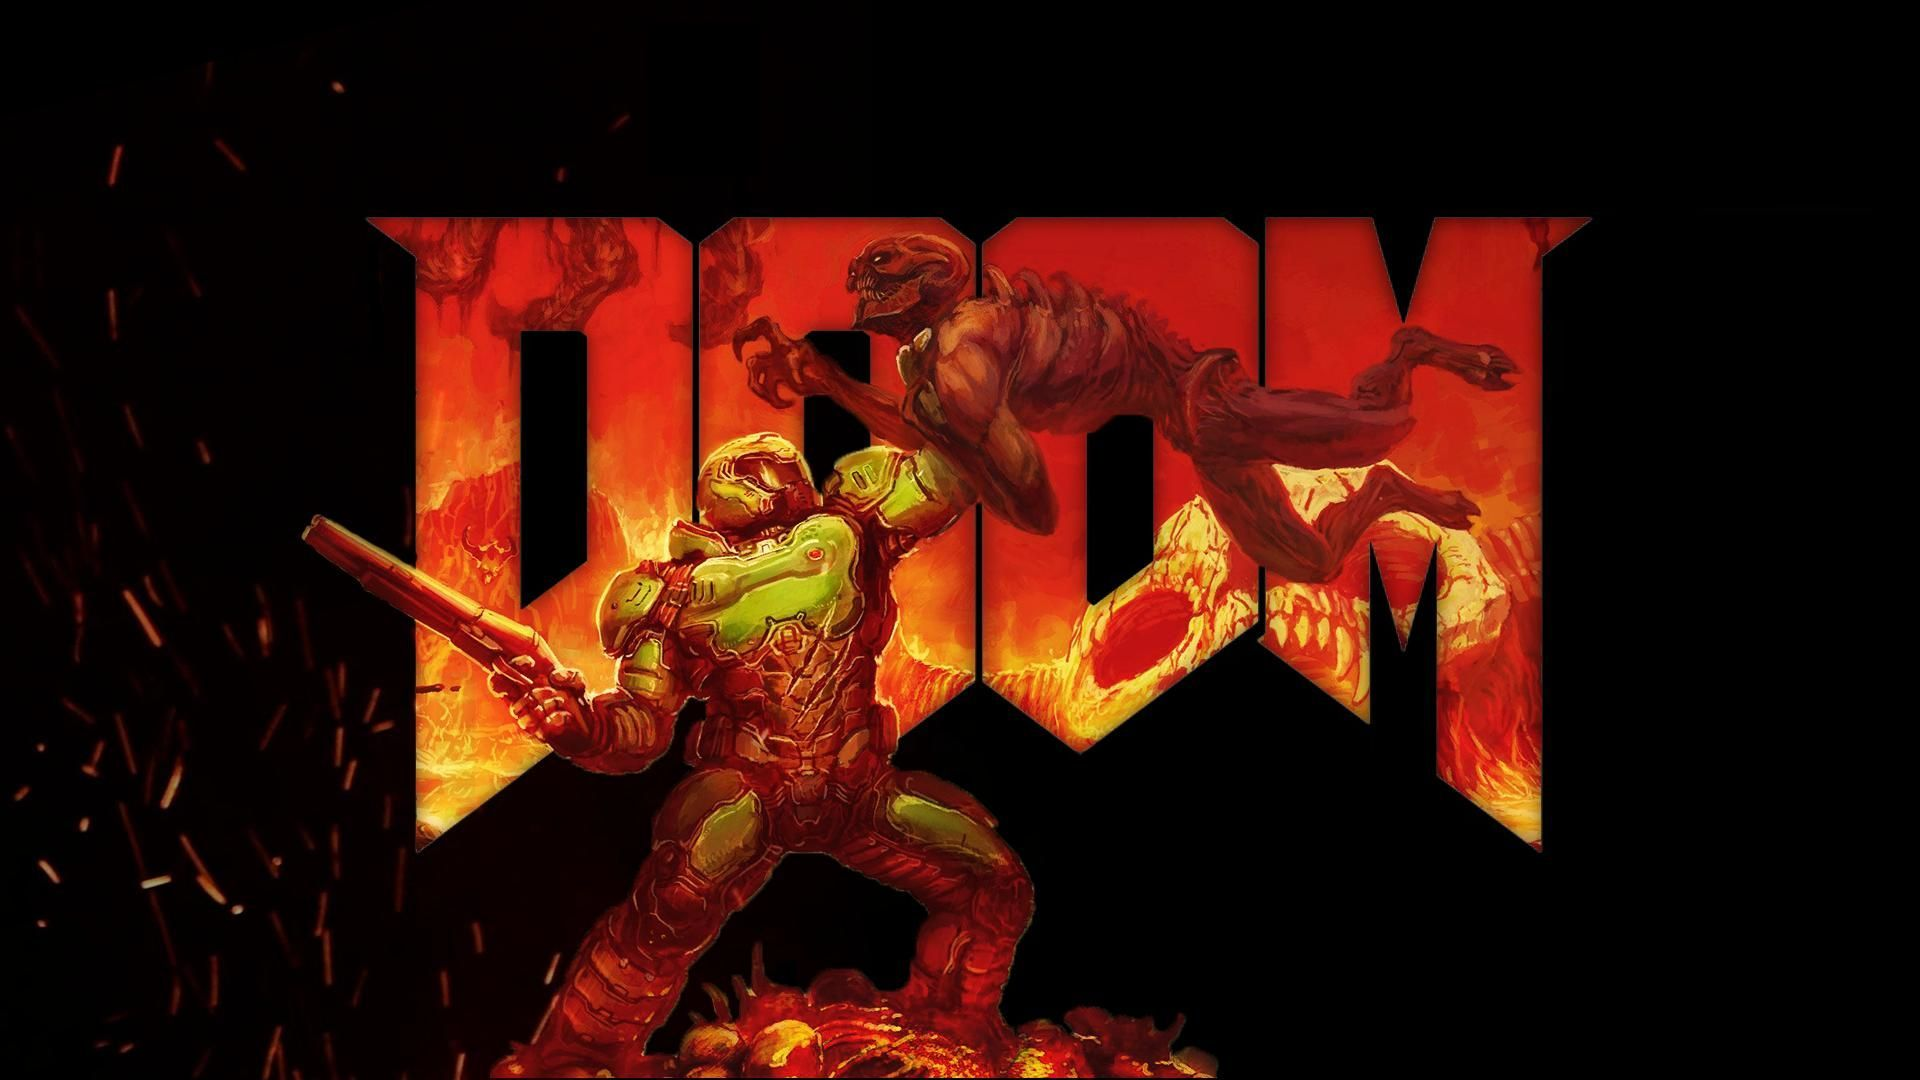 1920x1080 OC - DOOM Wallpaper | Doom game | Doom game, Gaming wallpapers, Games